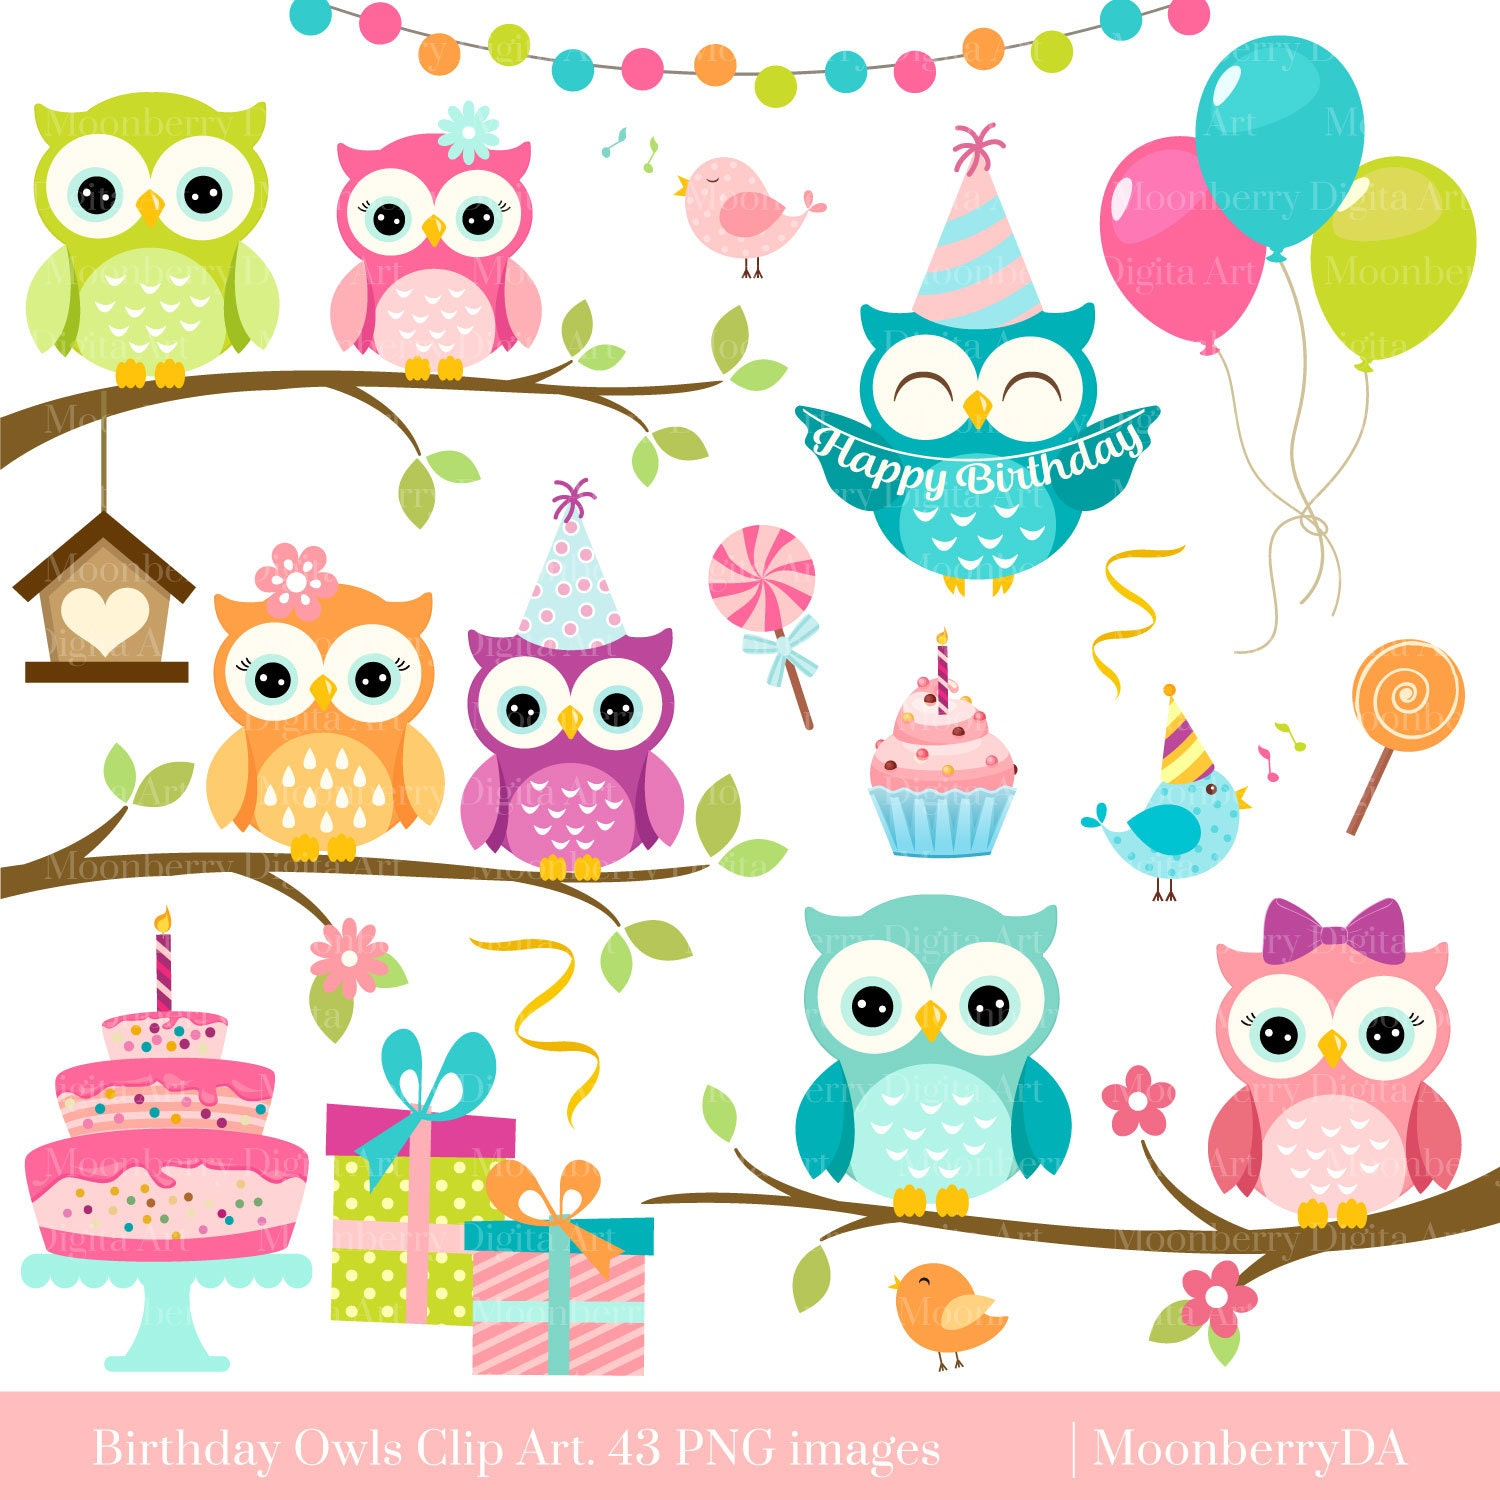 Owls Clipart 'BIRTHDAY OWLS' Clip Art. Digital Owls